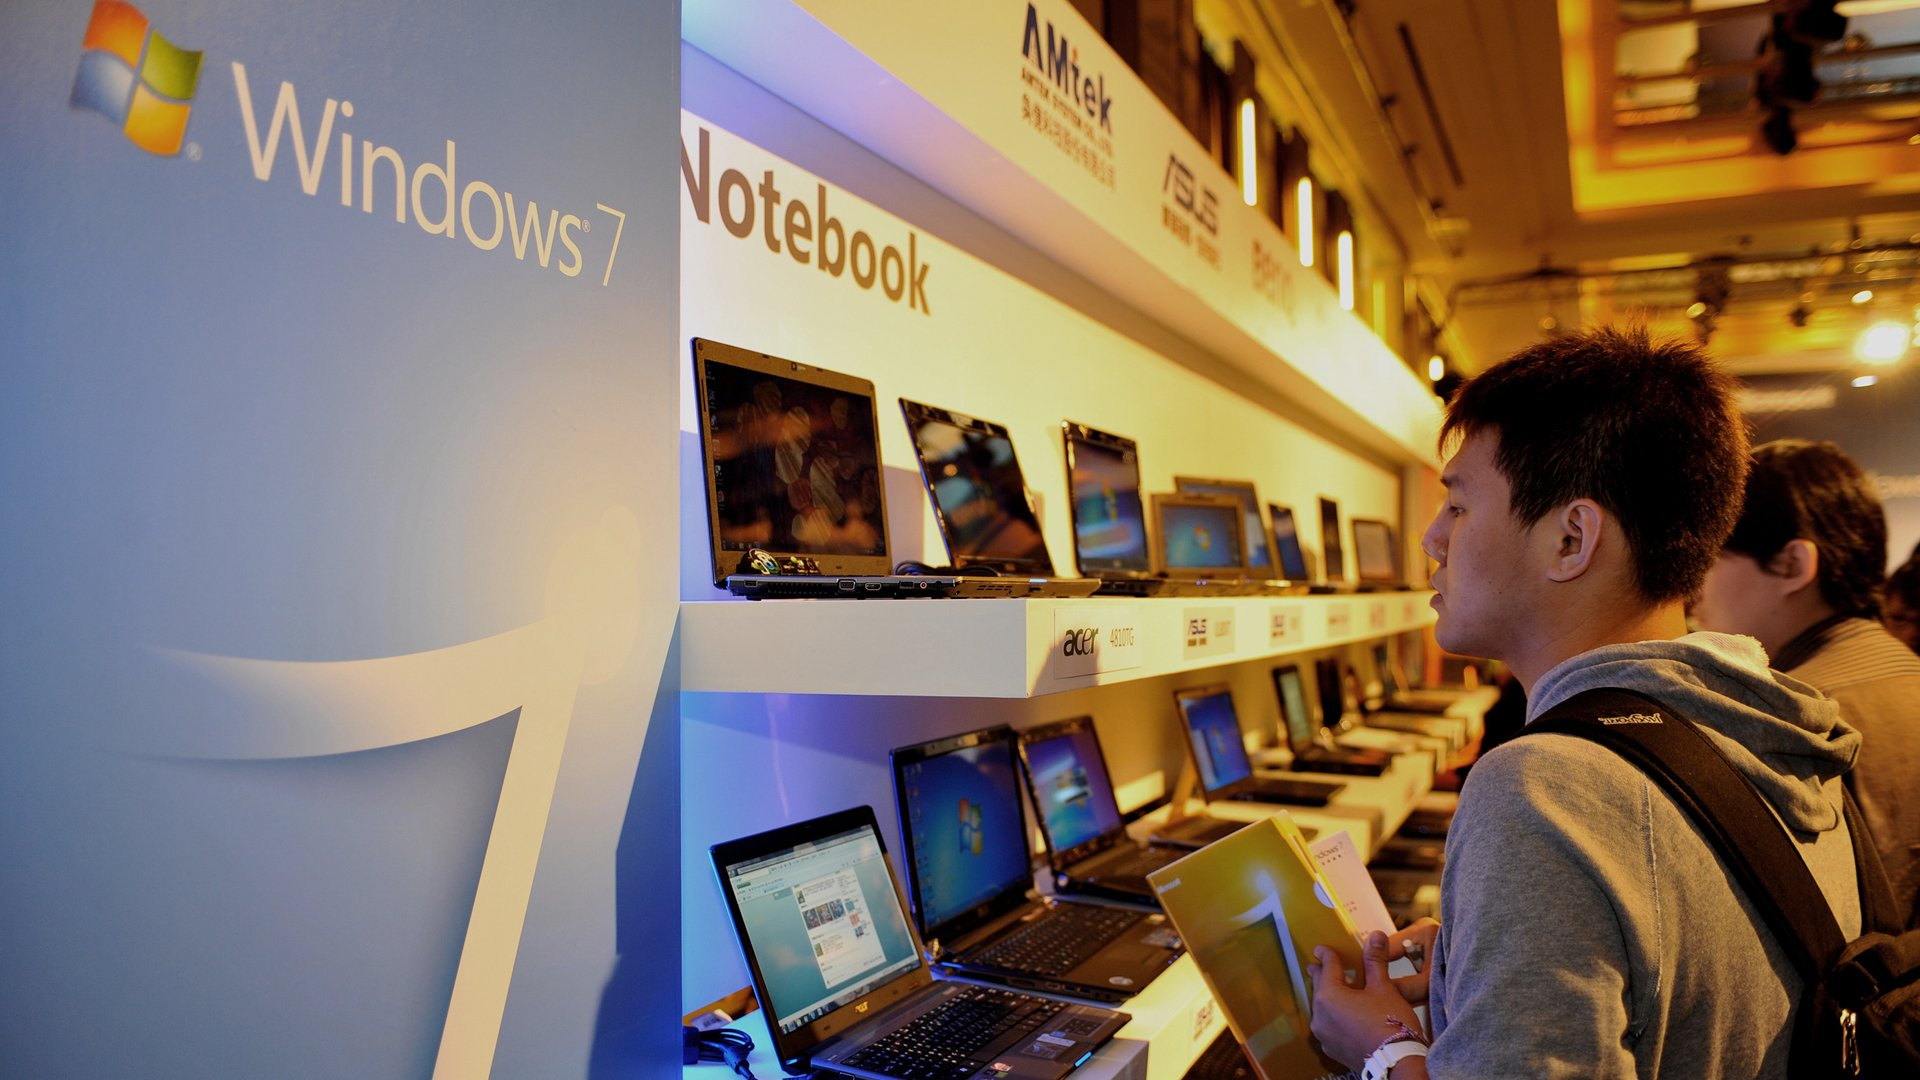 A man looks at laptops featuring the Windows 7 operation system during a launch party in Taipei on October 23, 2009. (Credit: Sam Yeh/AFP/Getty Images)